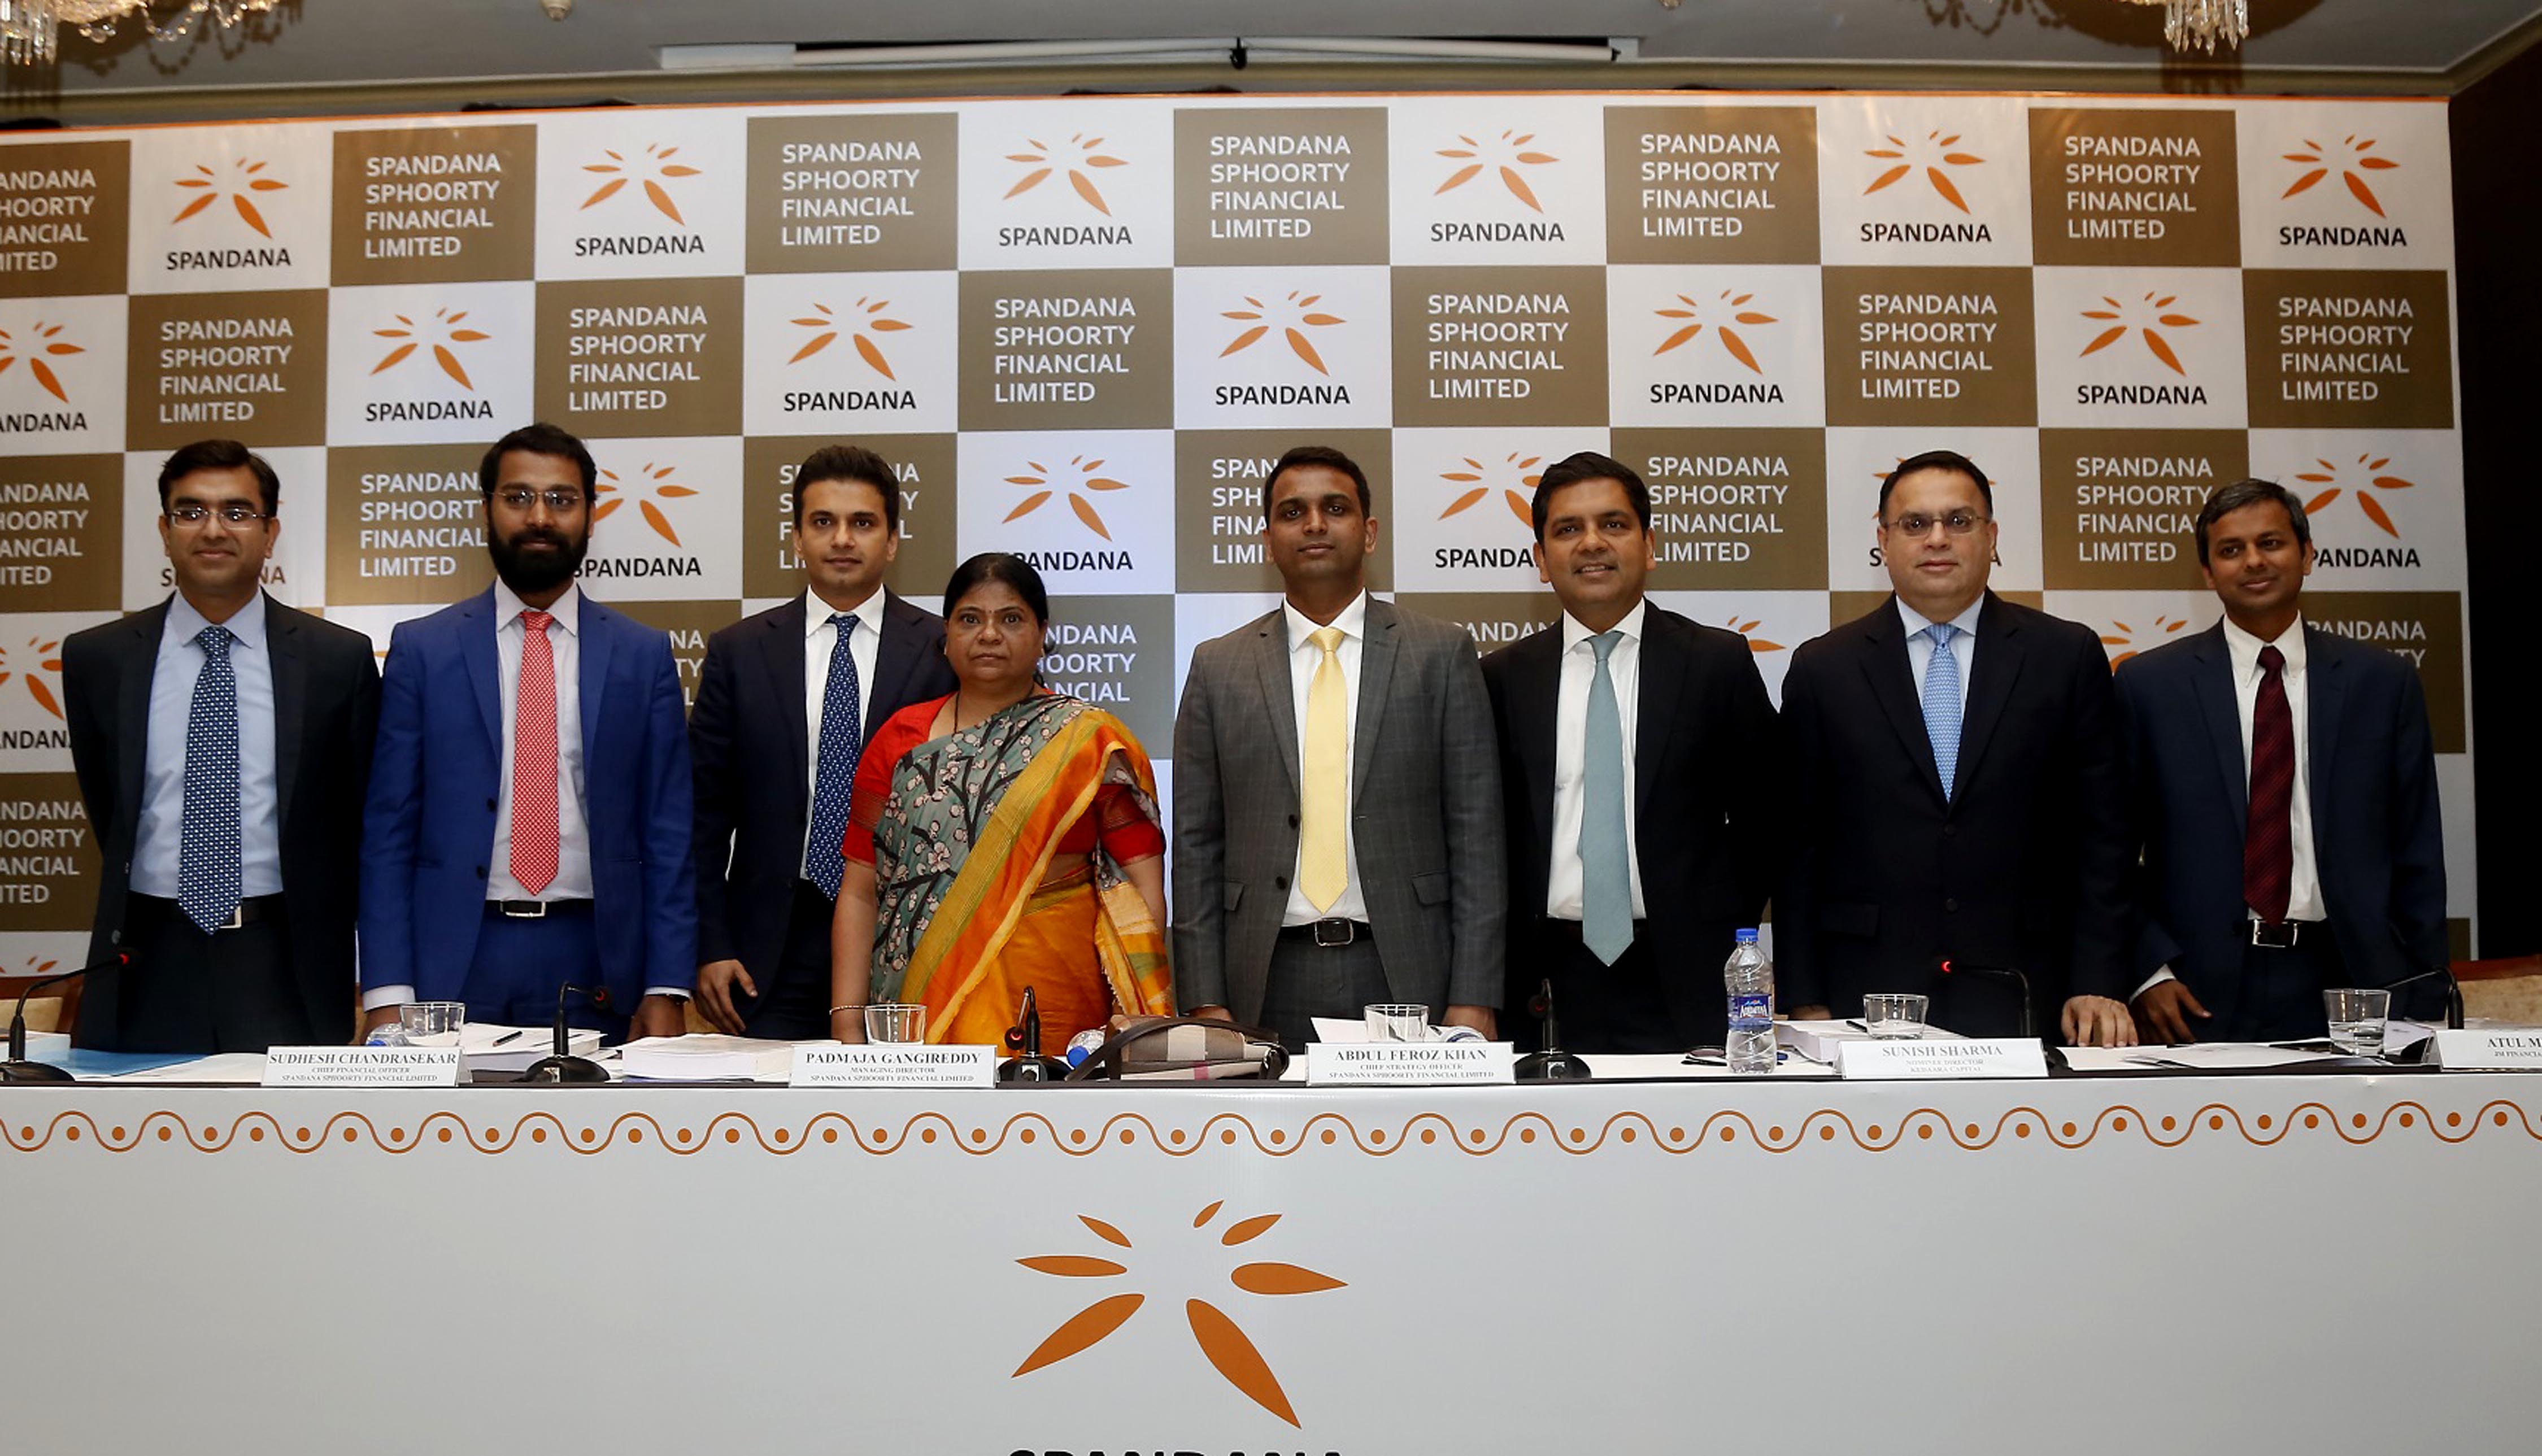 MUMBAI, (GPN): From L-R: Pritish Kandoi (ICICI Securities Limited), Sudhesh Chandrasekar (Chief Financial Officer, Spandana Sphoorty Financial Limited), Chirag Negandhi (AXIS Capital Limited), Padmaja Gangireddy ( Managing Director, Spandana Sphoorty Financial Limited), Abdul Feroz Khan ( Chief Strategy Officer, Spandana Sphoorty Financial Limited), Sunish Sharma (Nominee Director, Kedara Capital), Atul Mehra (JM Financial Limited), Nipun Goel (IIFL Holdings Limited) at the announcement of company's Initial Public Offer (IPO) in Mumbai - Photo By Sachin Murdeshwar